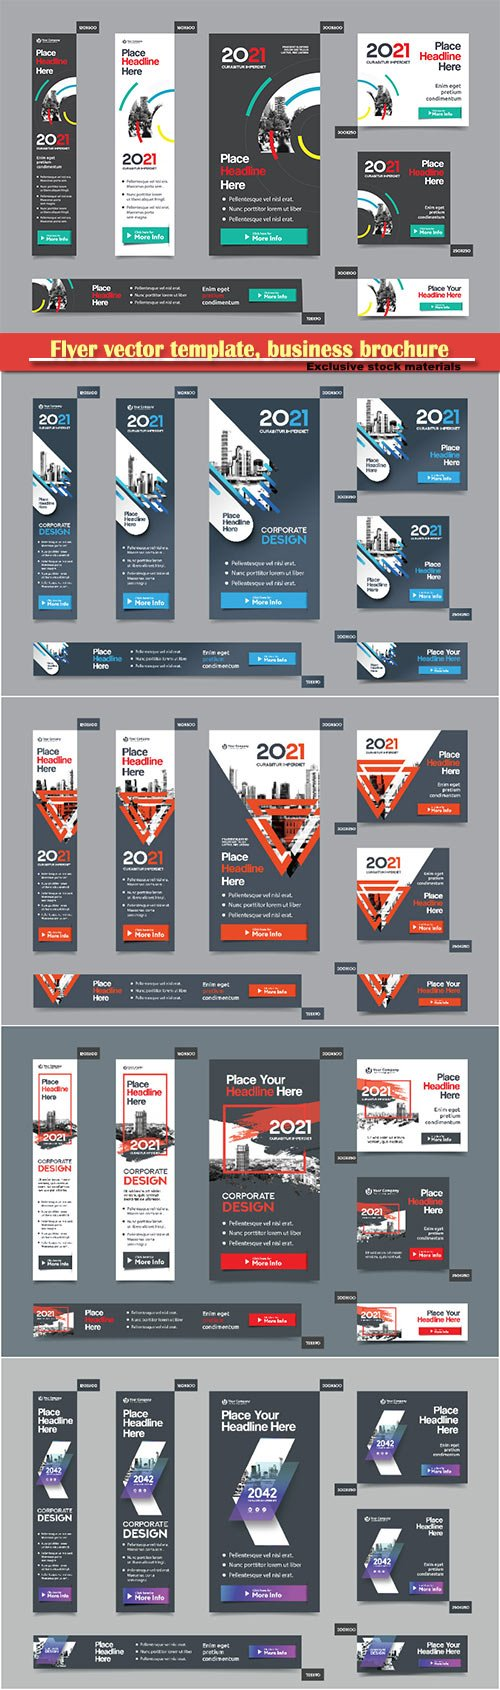 Flyer vector template, business brochure, magazine cover # 40